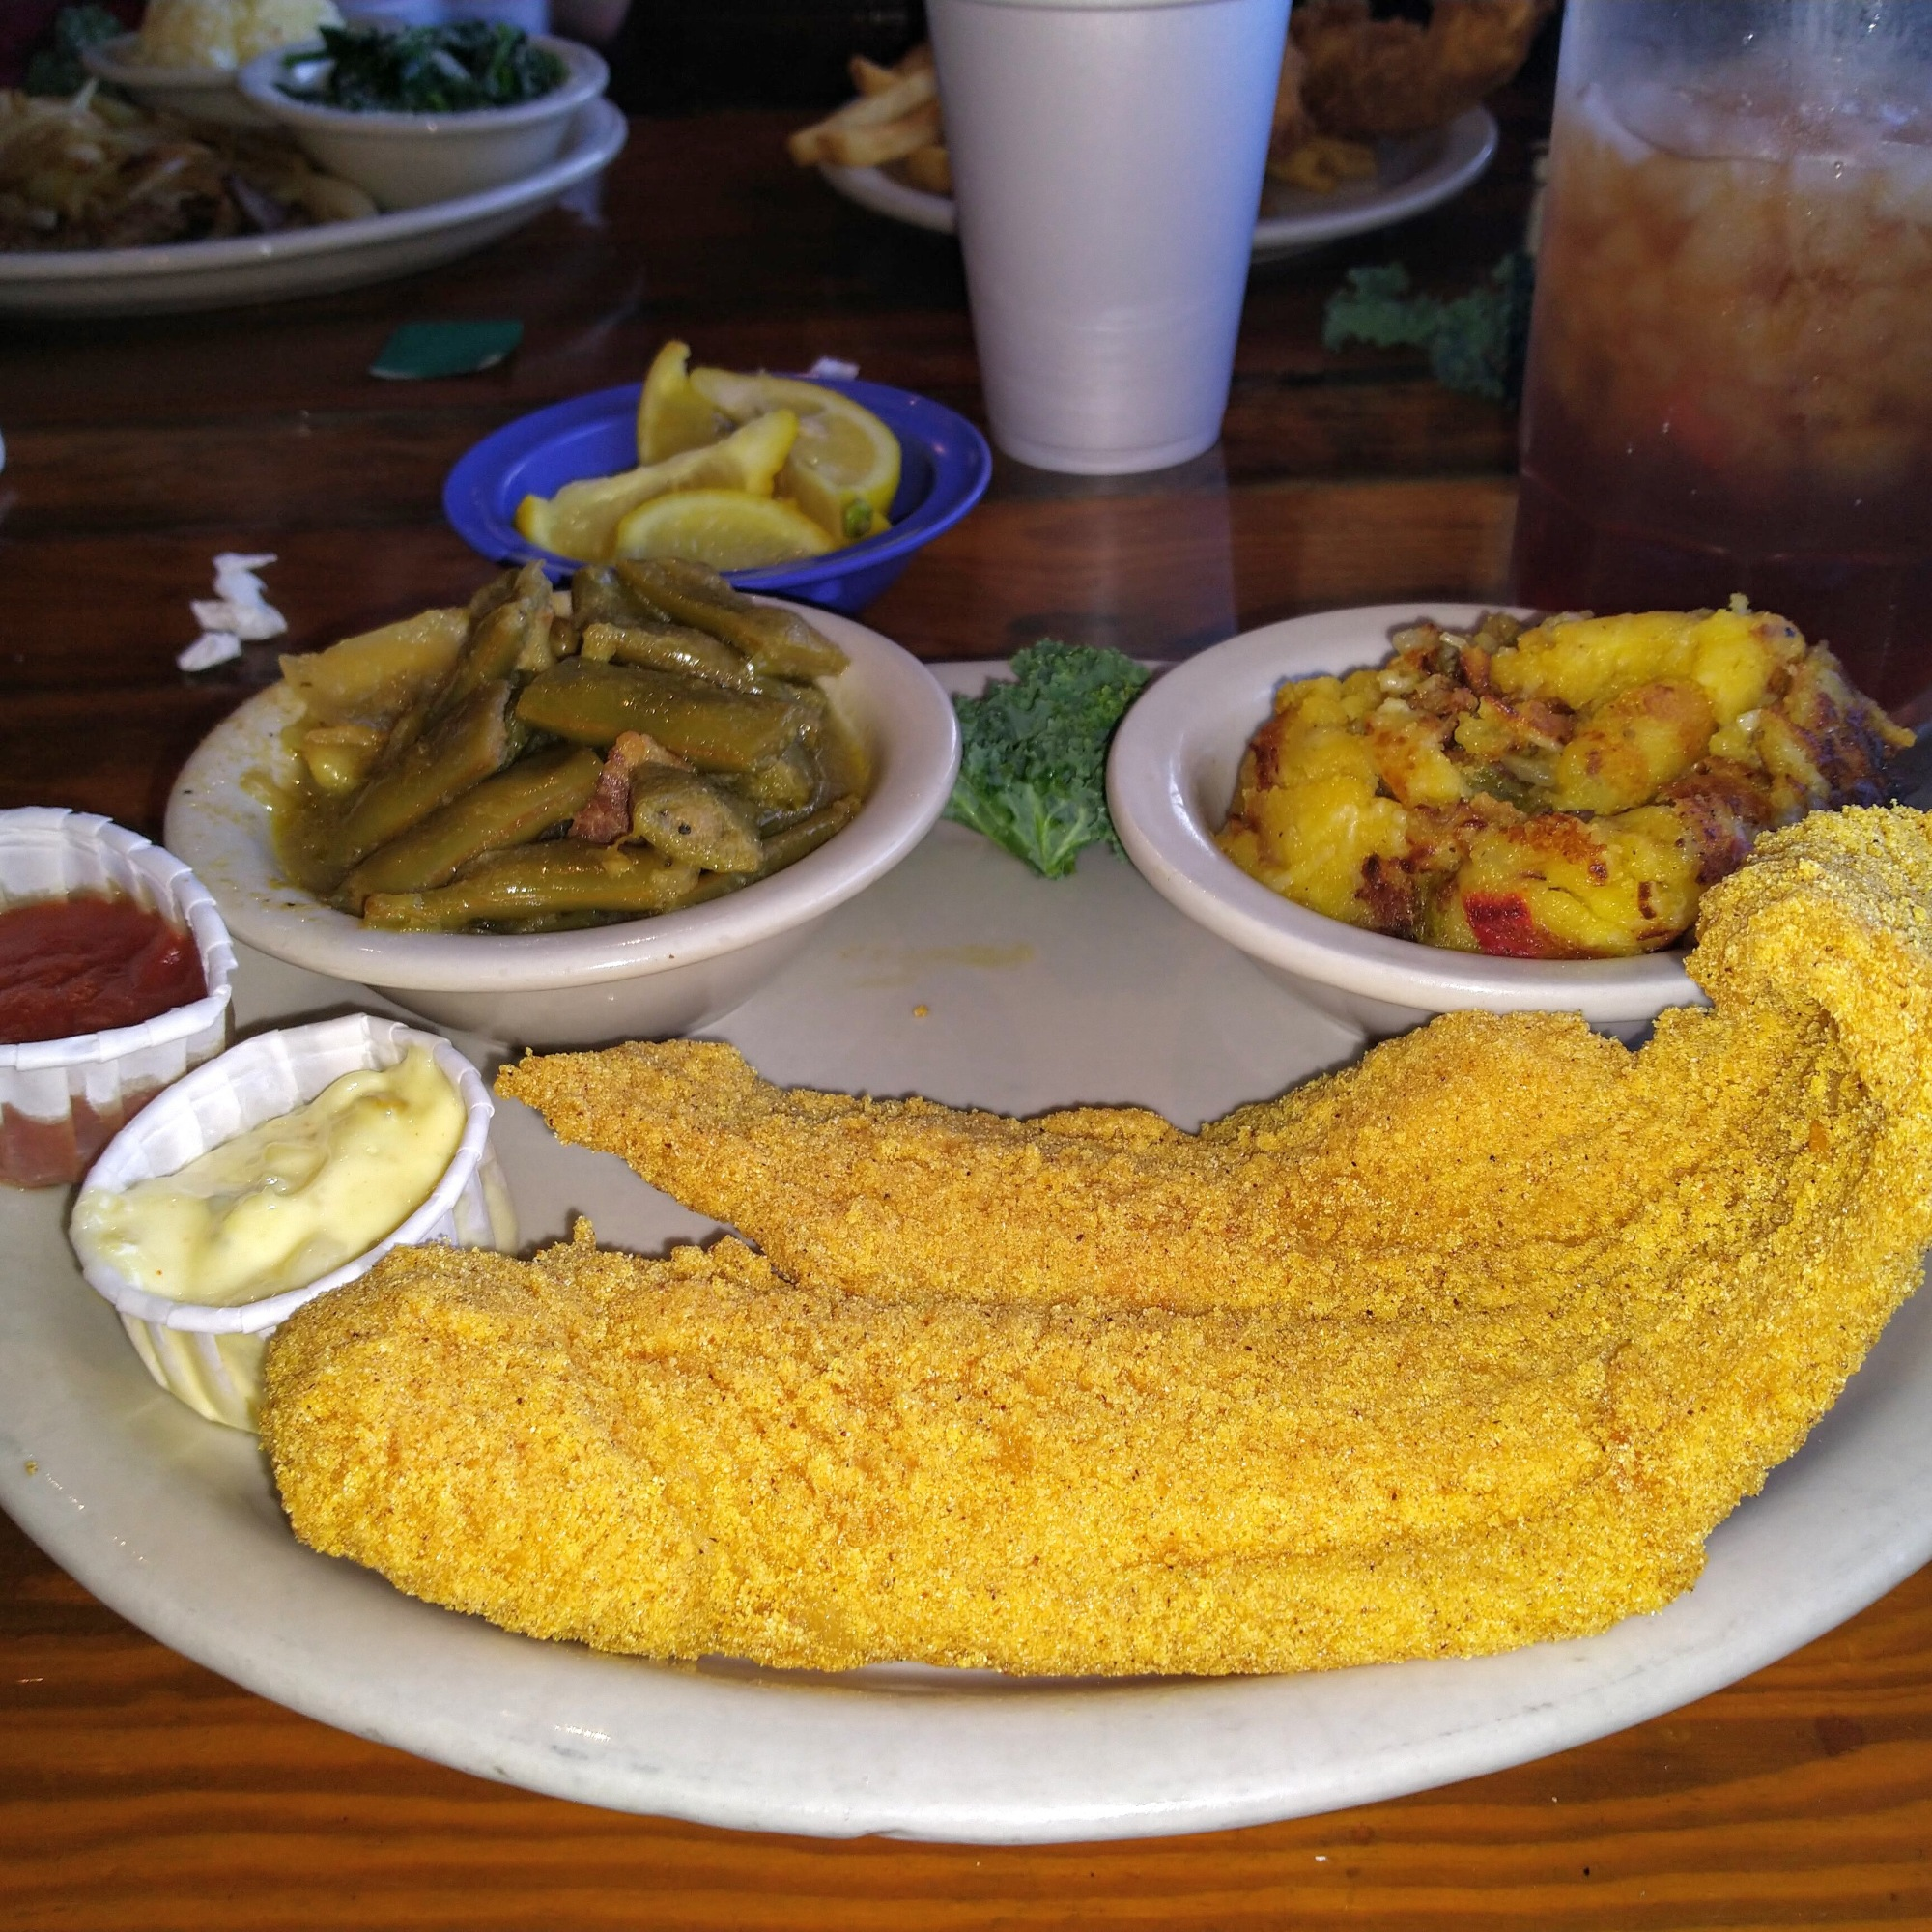 fried-fish-with-crab-dressing-and-green-beans-at-Millers-seawall-grill-in-galveston-texas